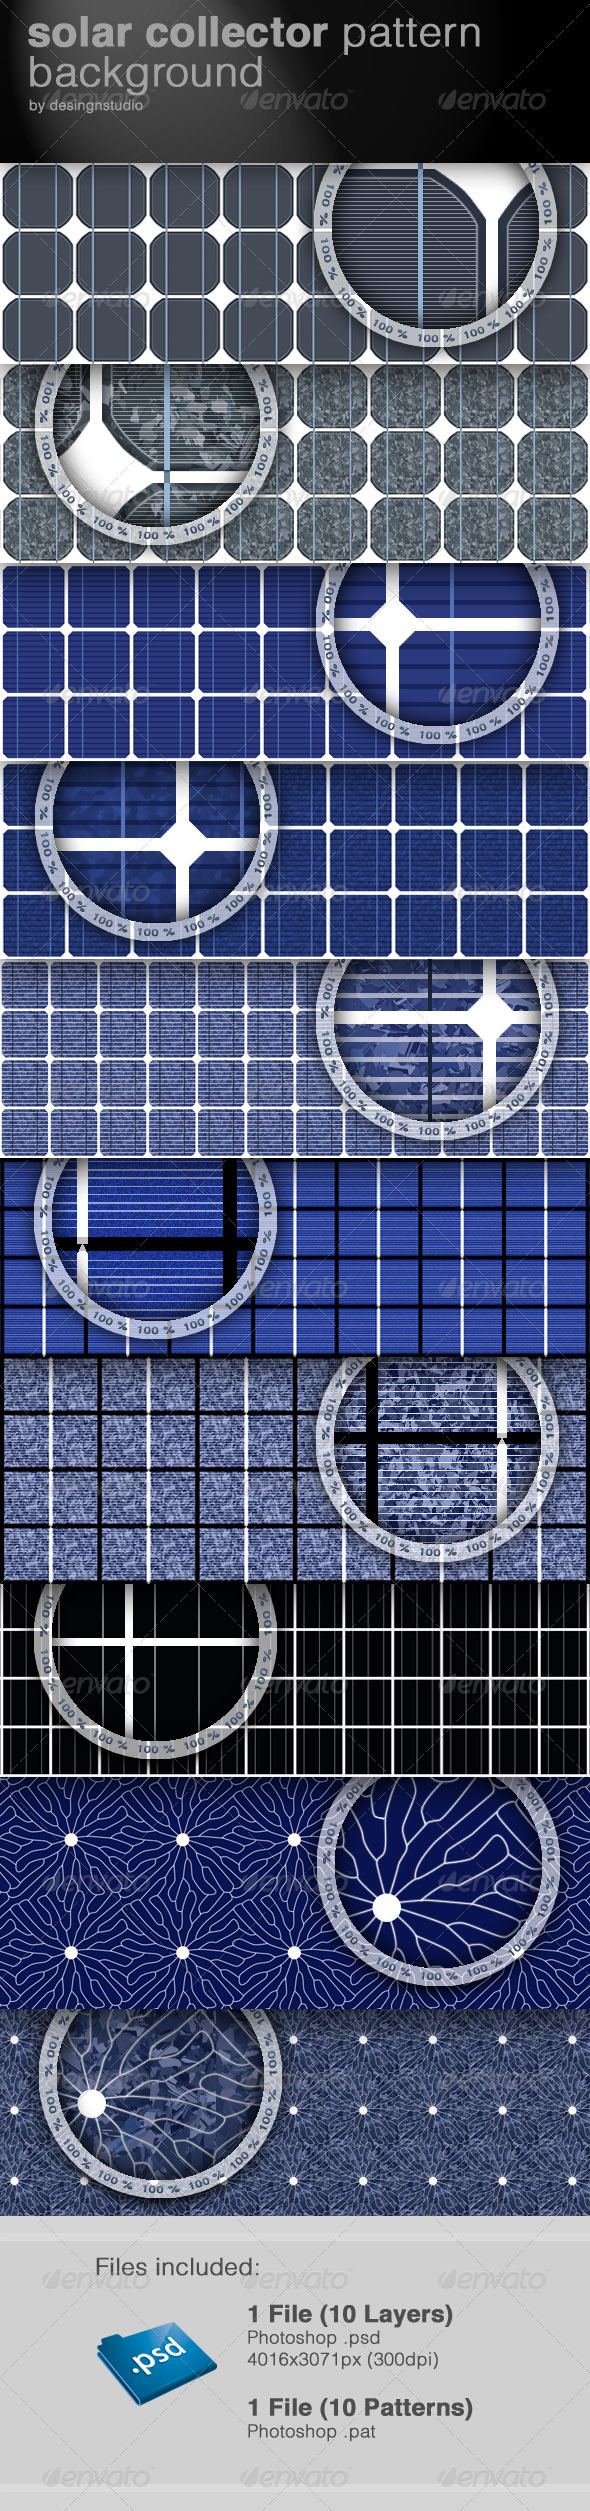 Solar Collector Pattern Background - Patterns Backgrounds